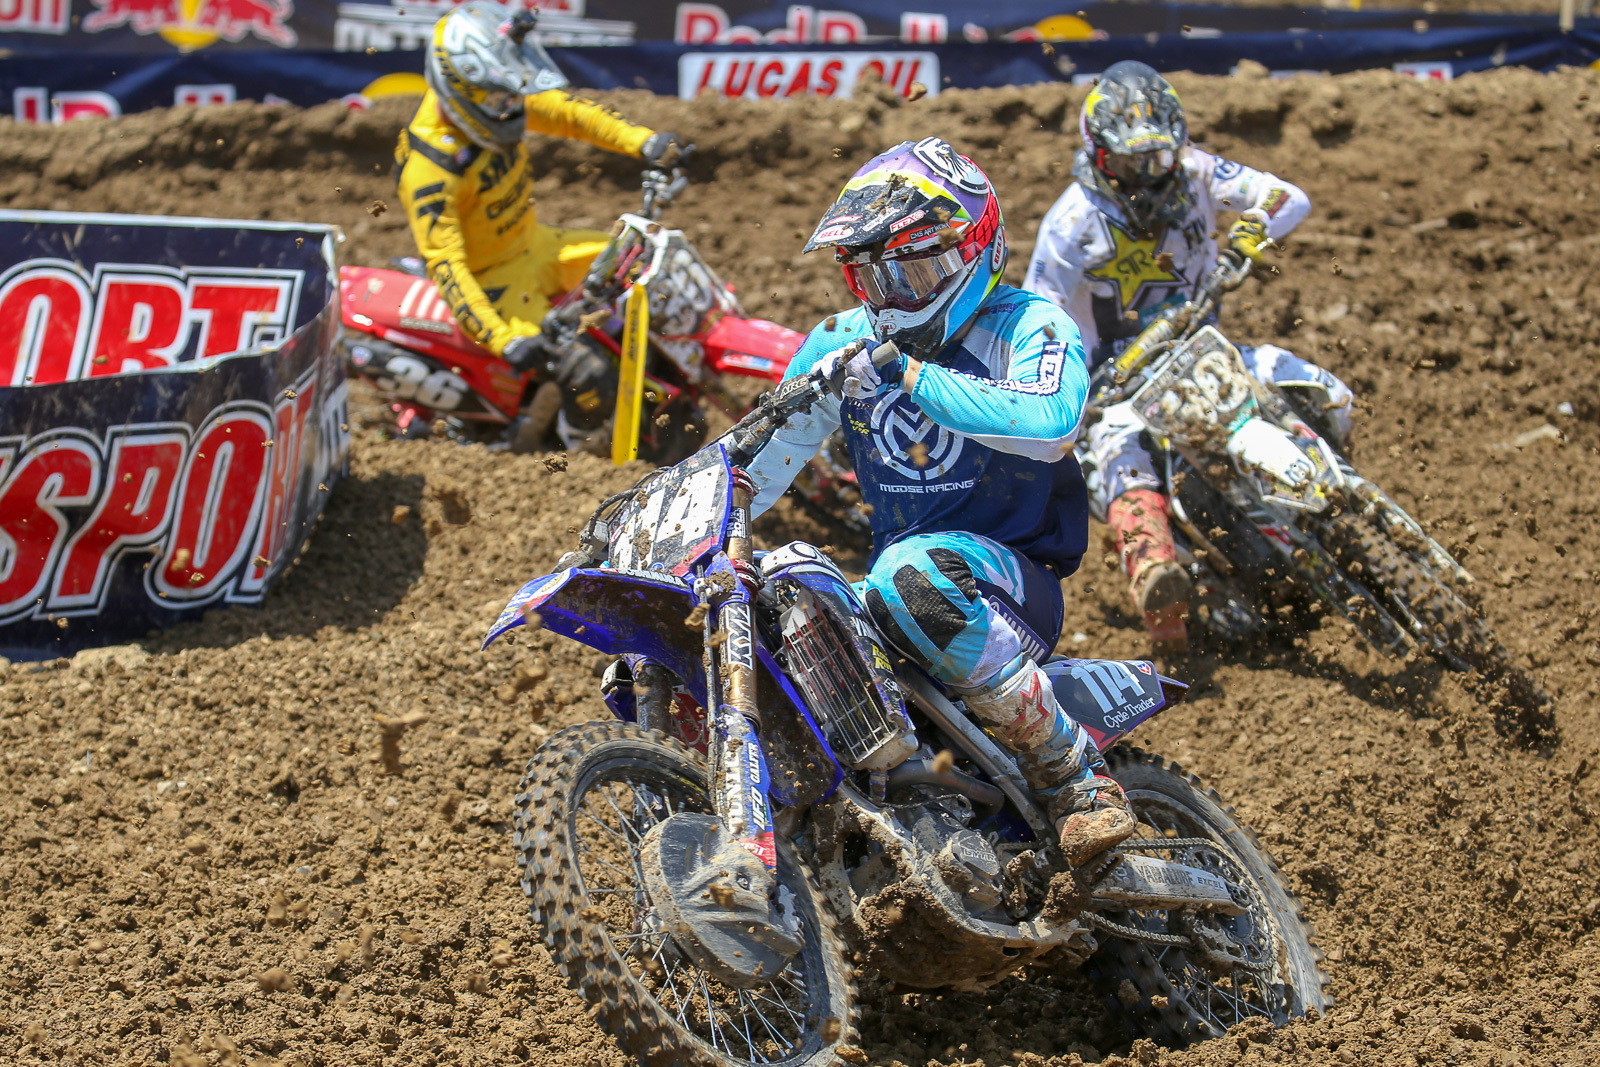 CycleTrader / Rock River Yamaha Announces 2019 Roster